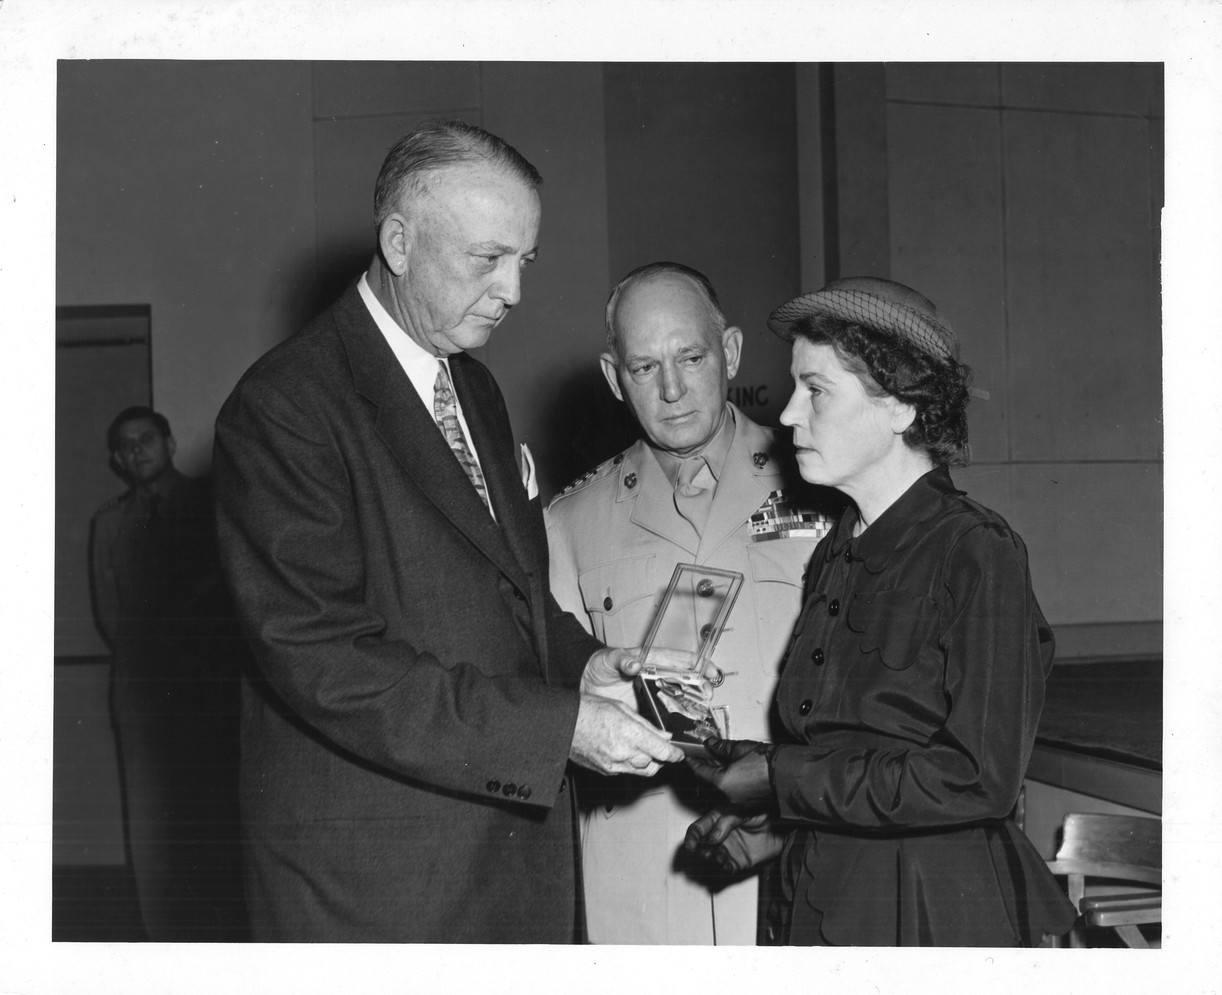 Mrs. Abrell Receiving the Medal